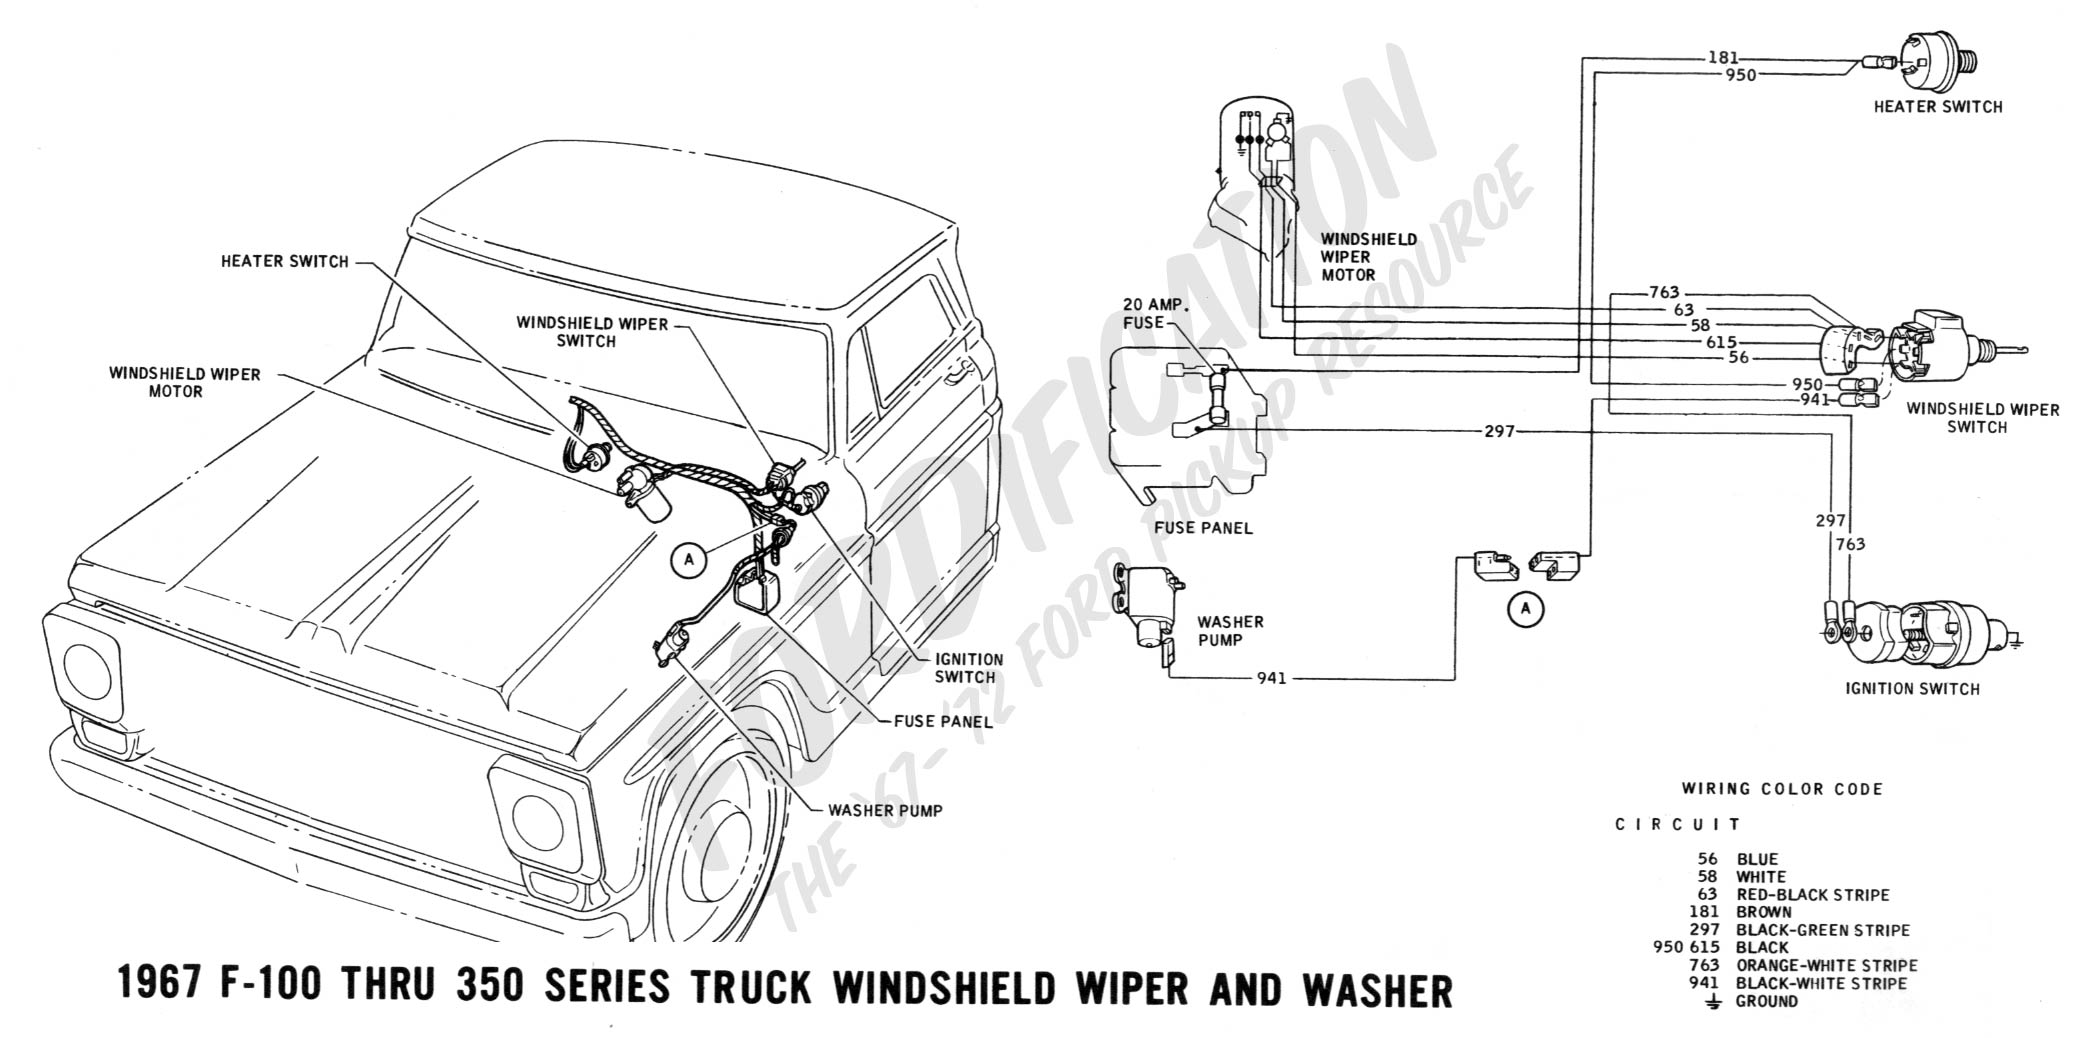 ford truck technical drawings and schematics section h wiring rh fordification com 1956 Ford Ignition Switch Wiring Diagram 66 Mustang Ignition Switch Wiring Diagram